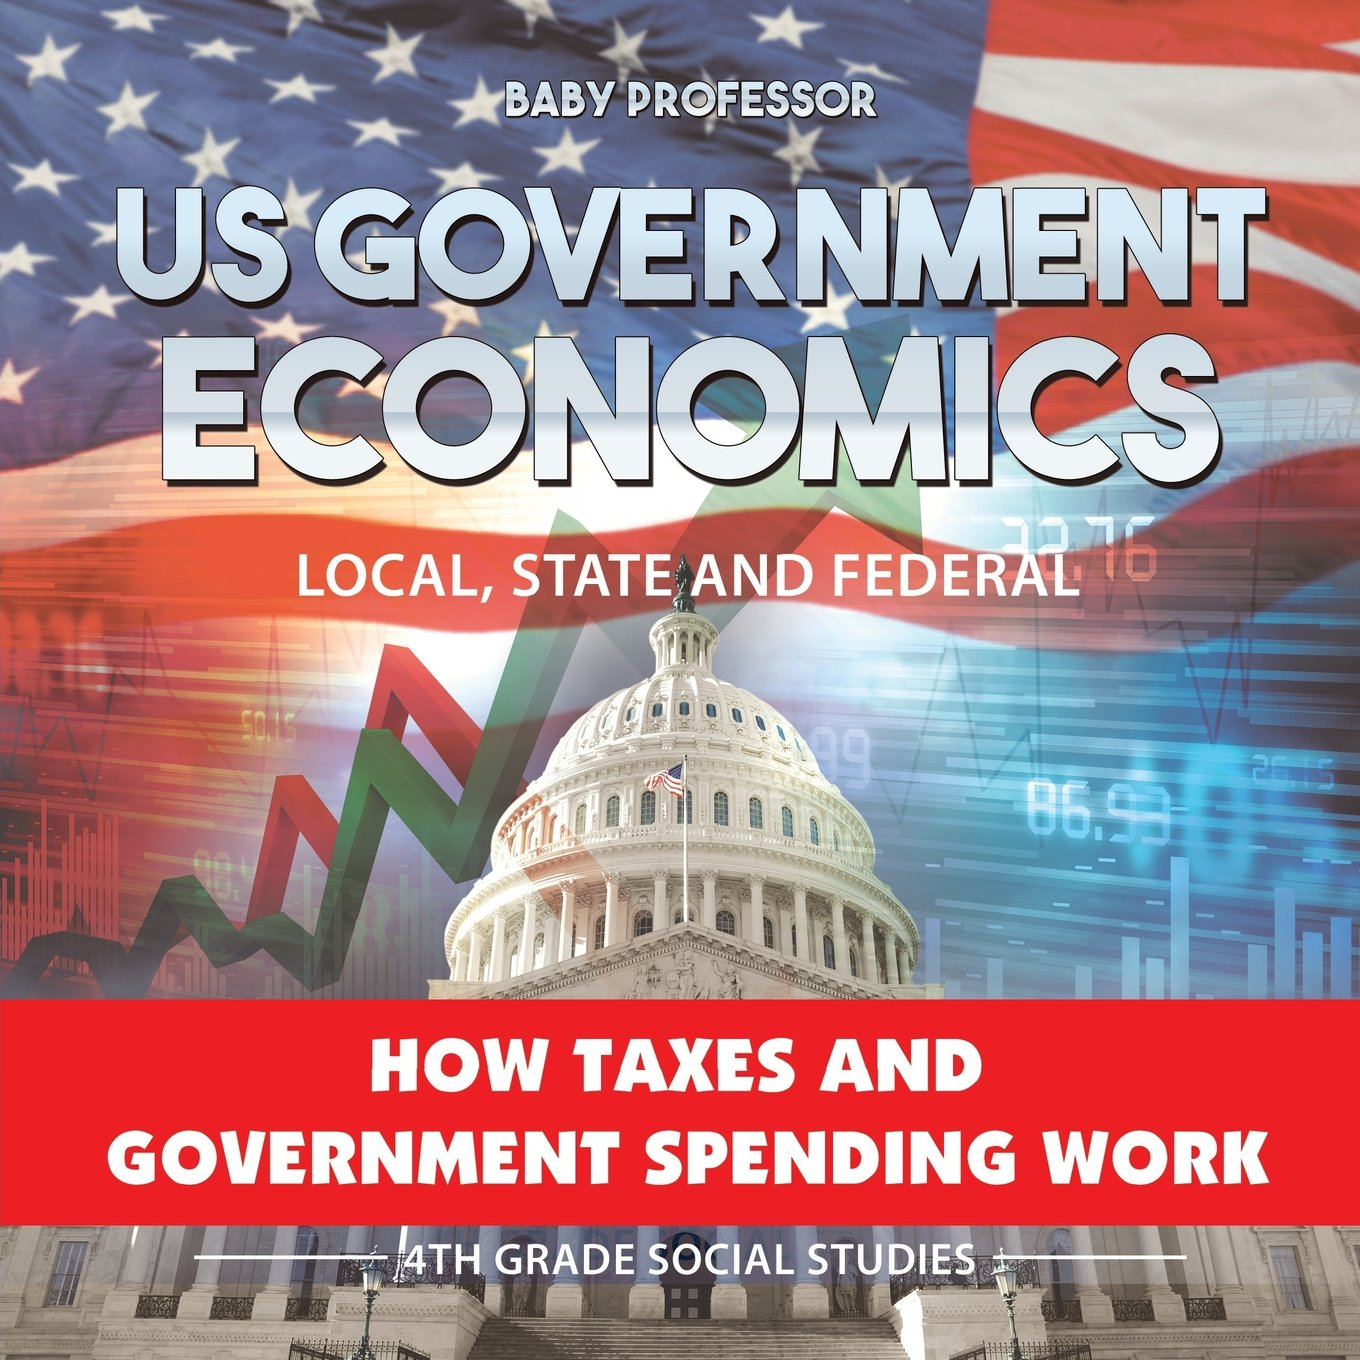 US Government Economics - Local, State and Federal   How Taxes and Government Spending Work   4th Grade Grade Social Studies